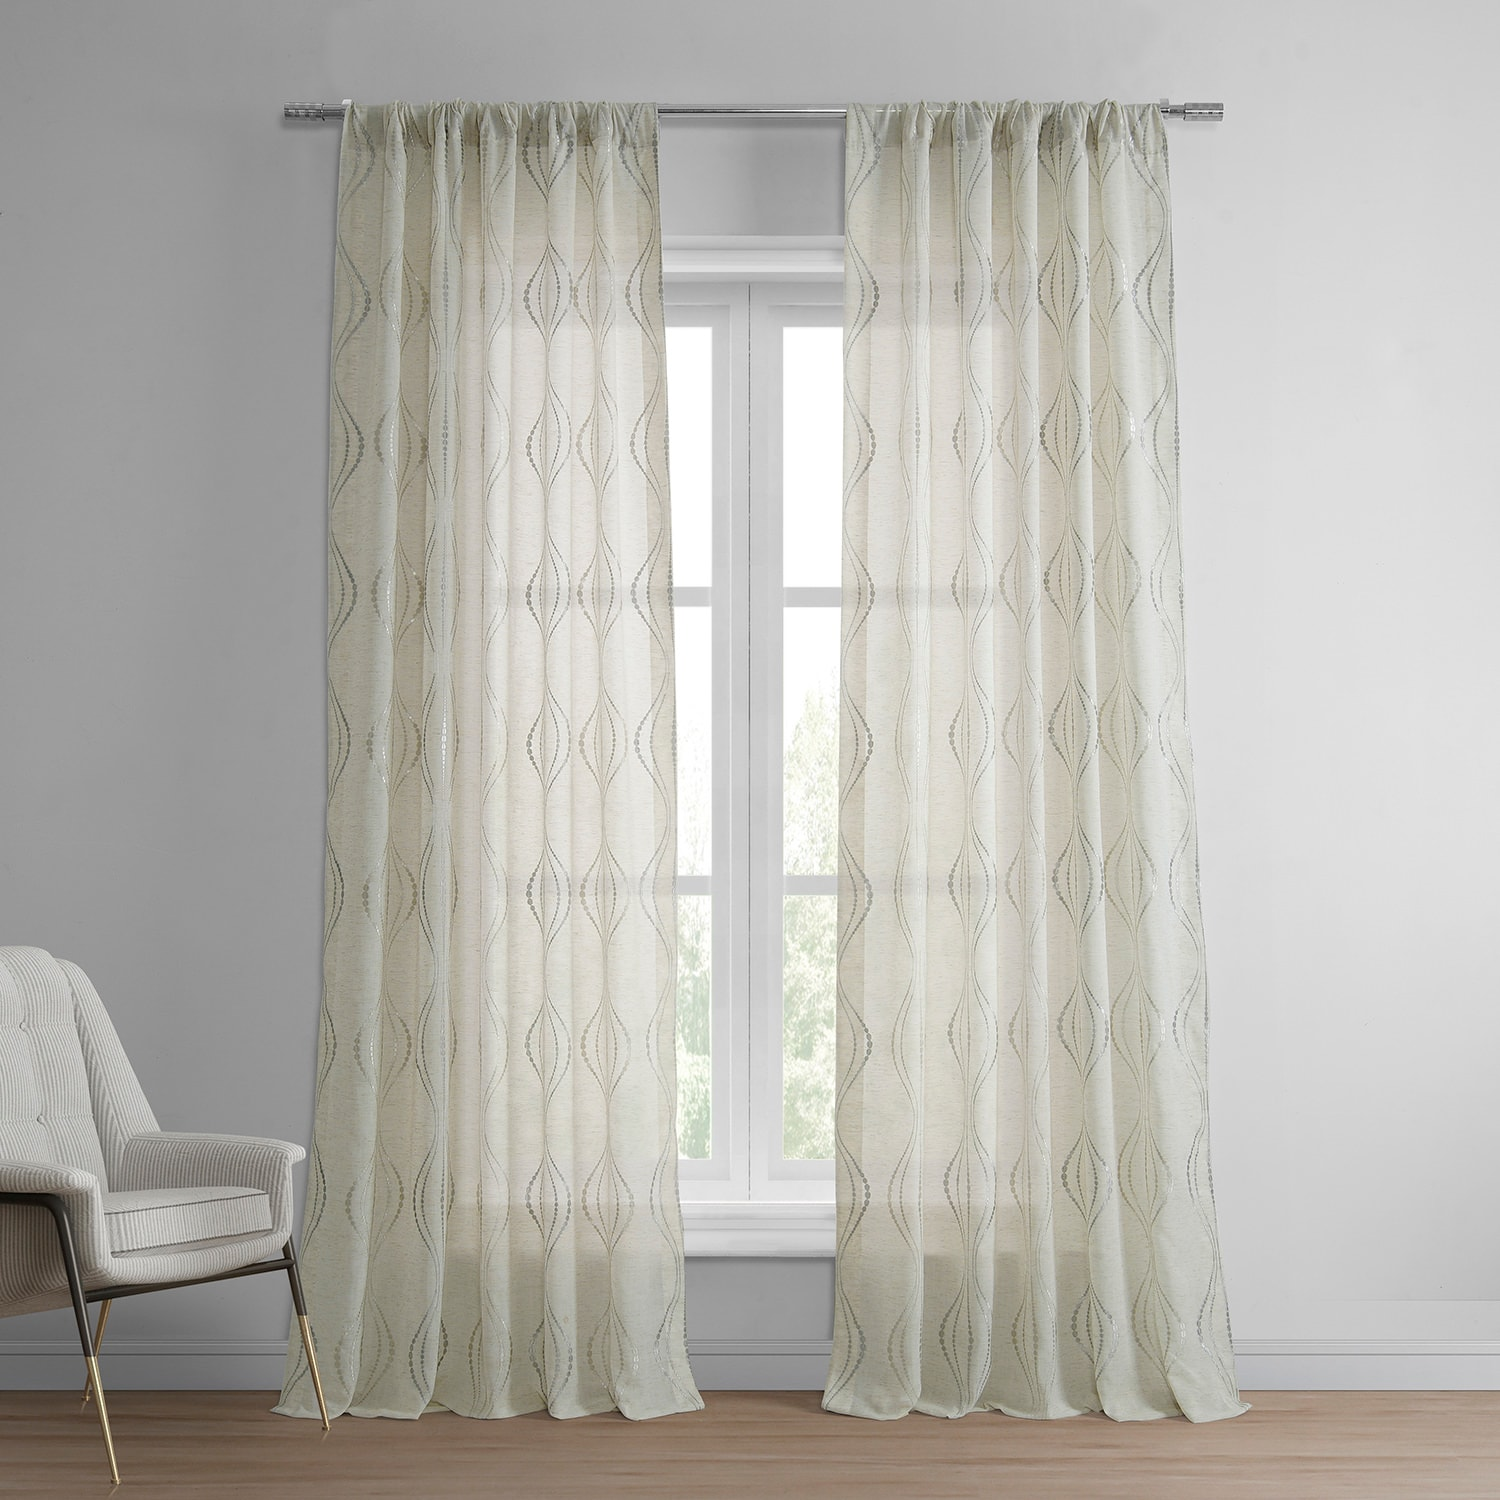 custom printed faux made eyelet heading curtains newspaper eos linen